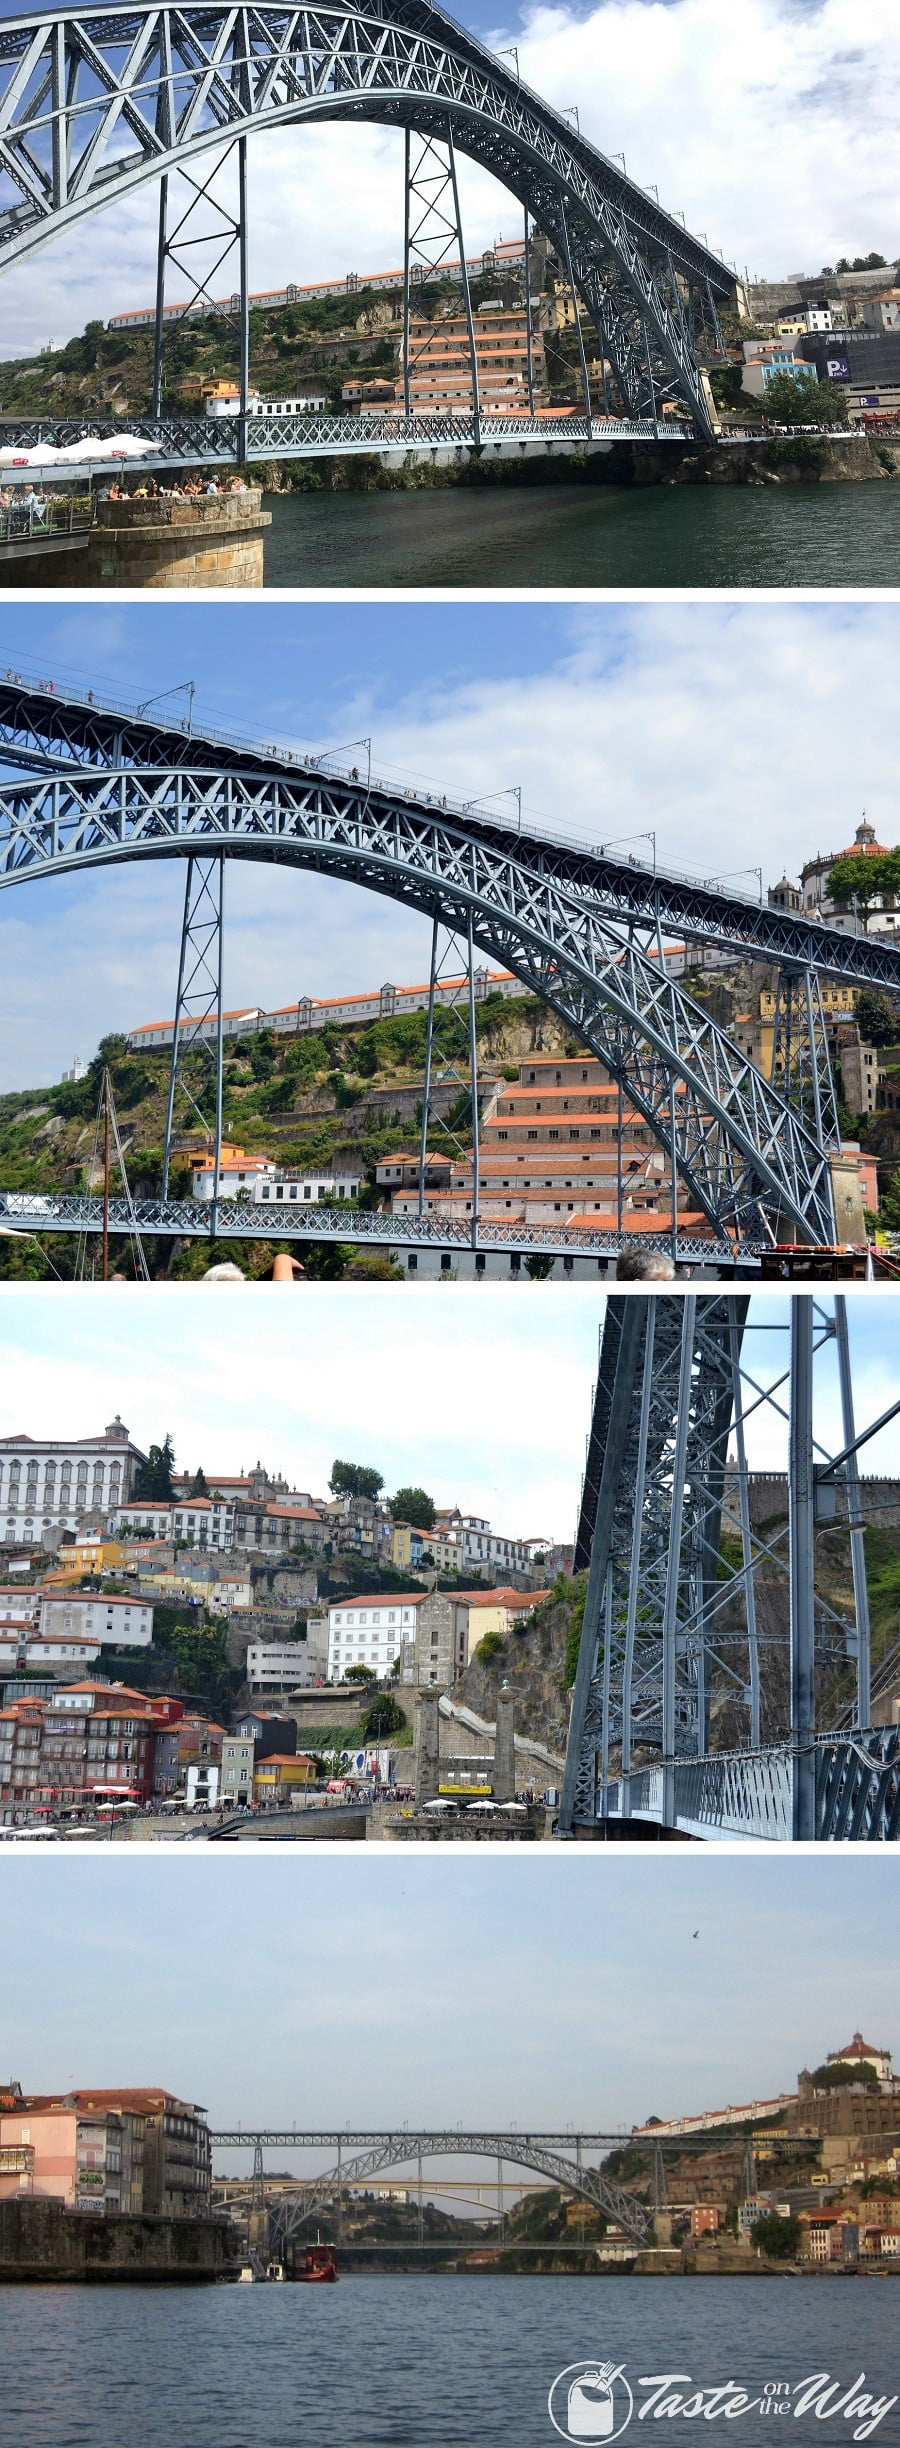 One of the top #thingstodo in #Porto, #Portugal is to take a boat trip on the river Douro. Check out for more! #travel #photography @tasteontheway